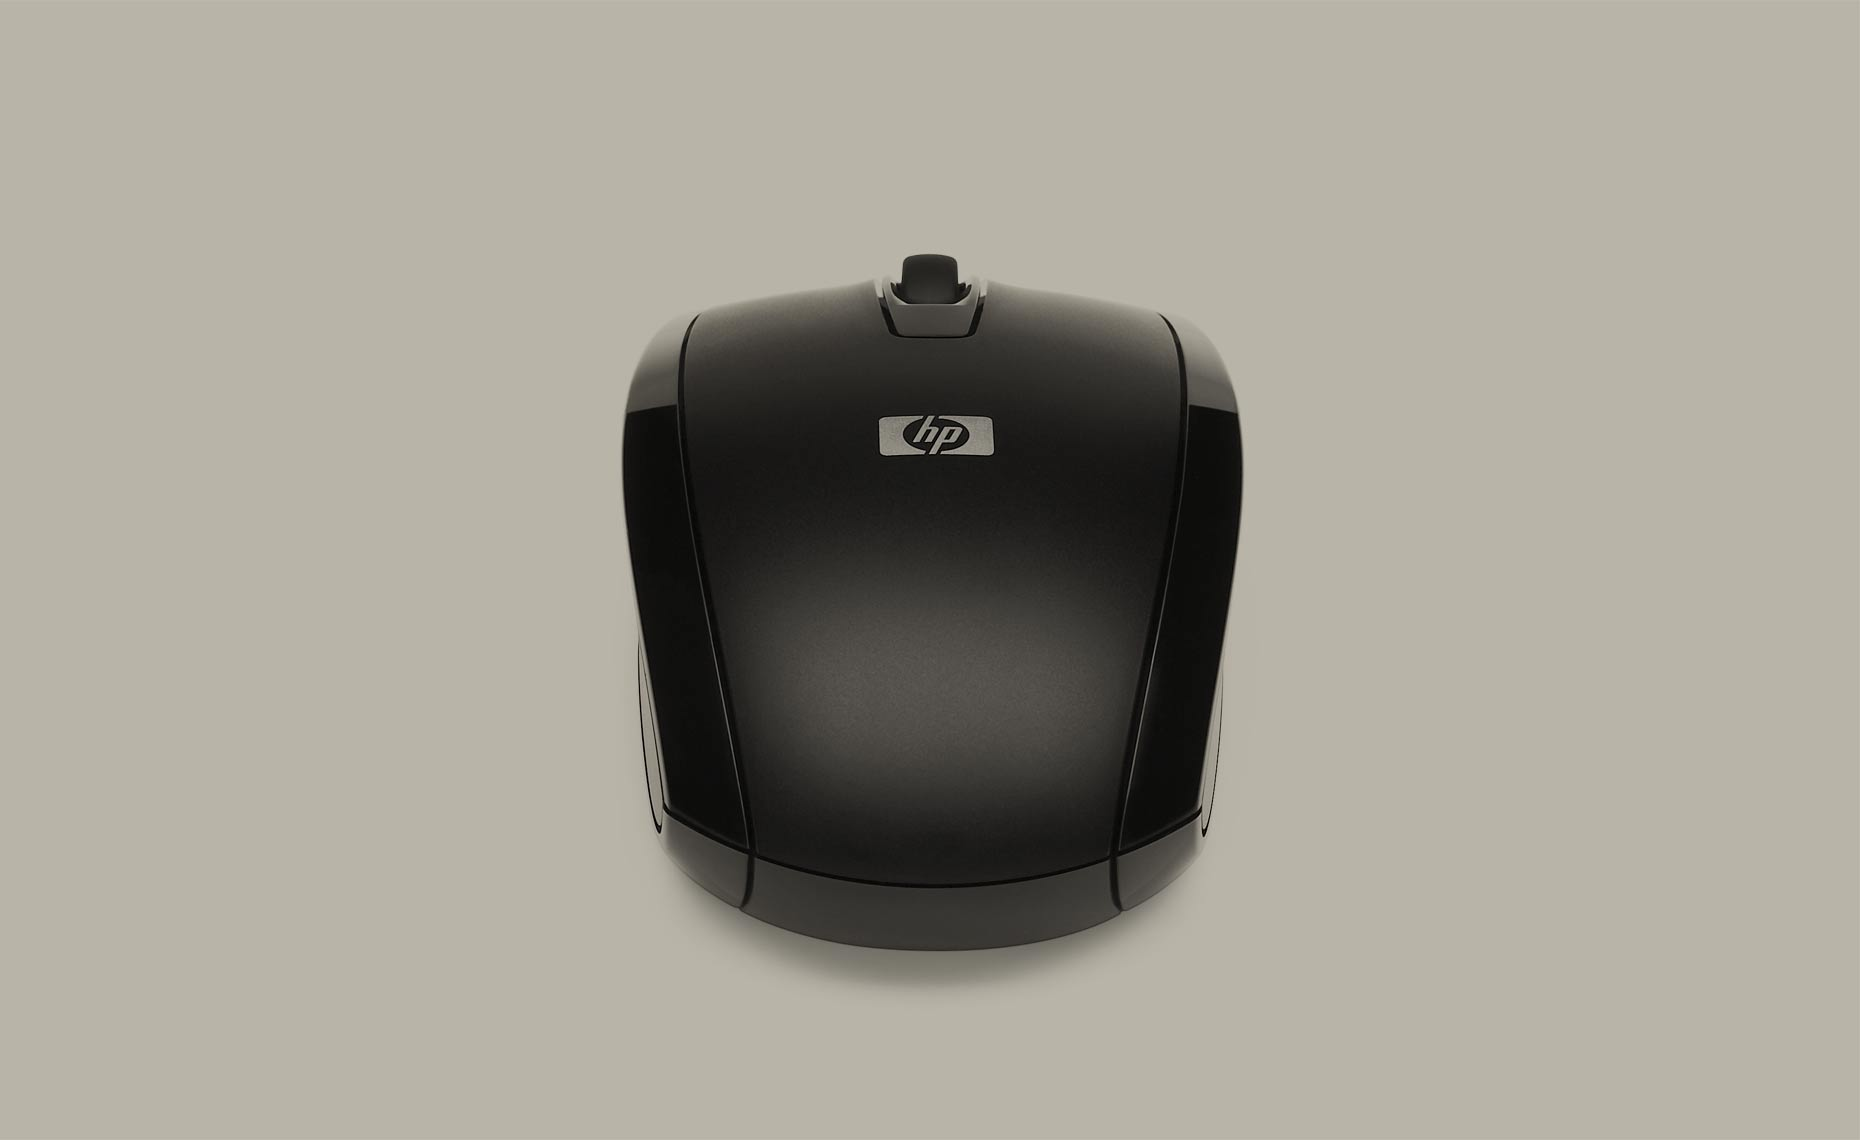 HP_mouse_colored